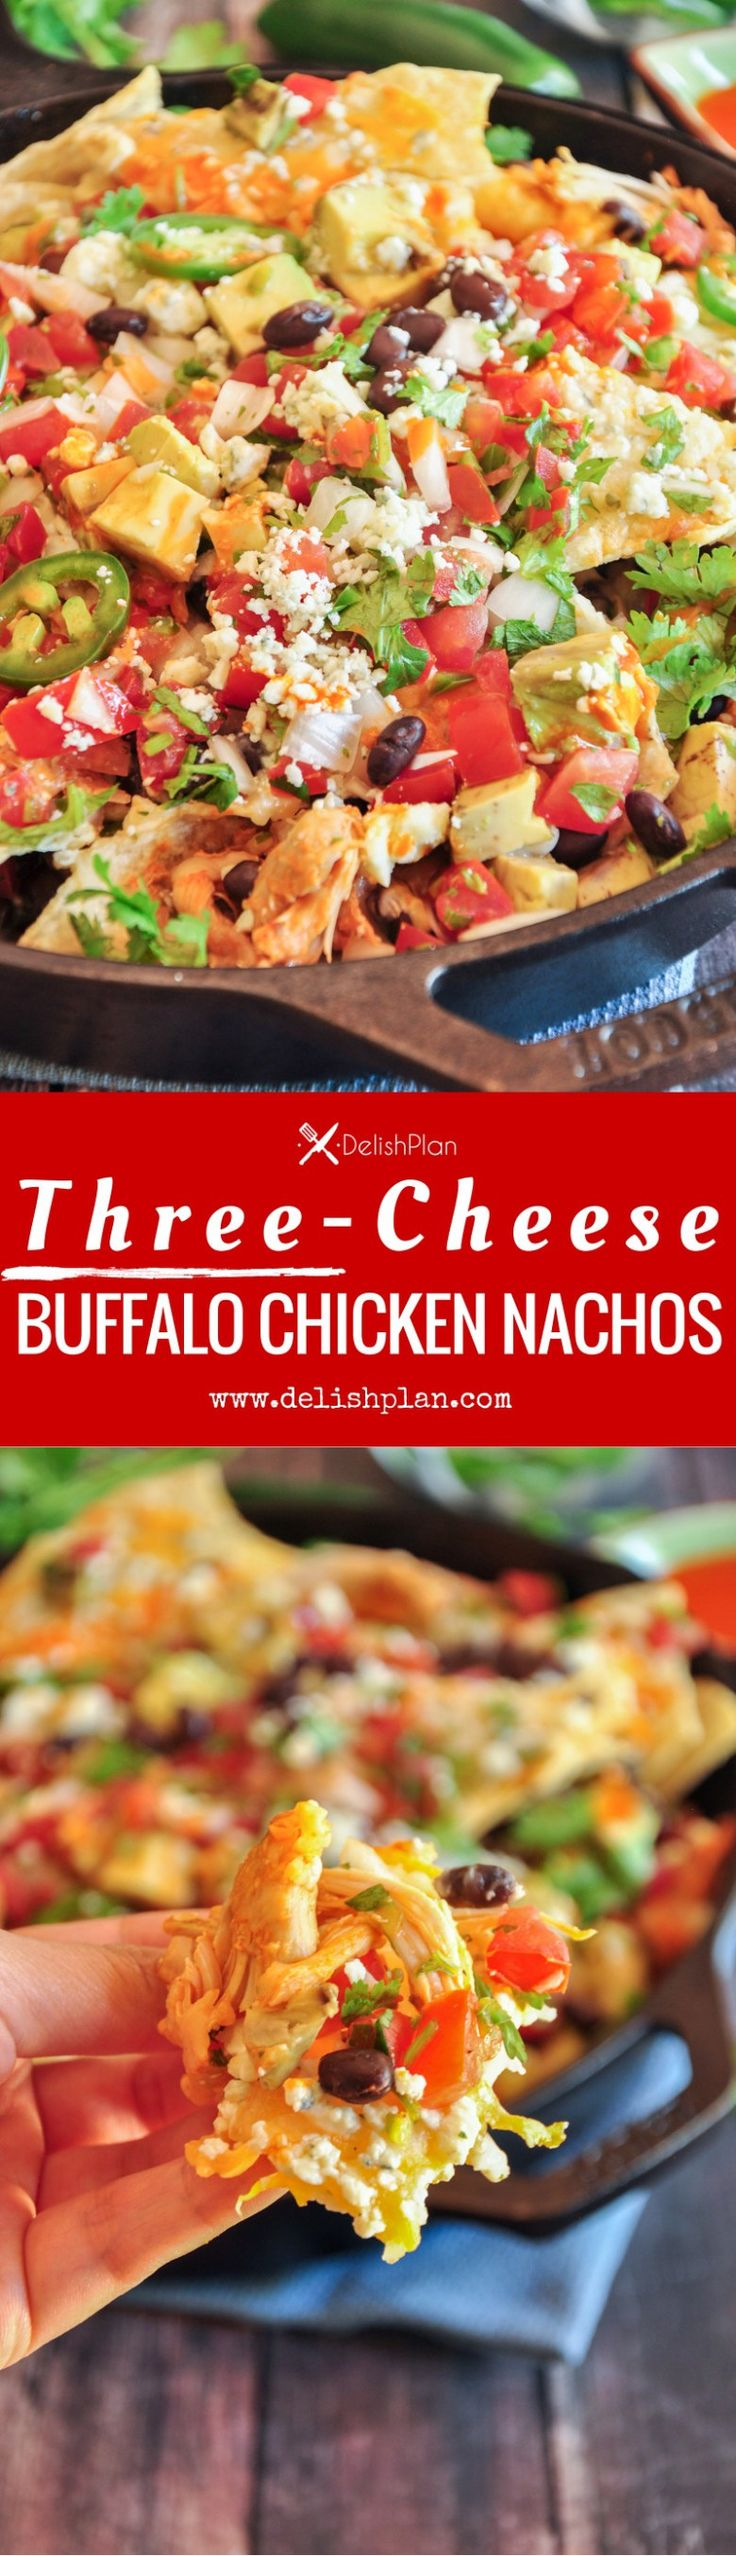 Three-Cheese Buffalo Chicken Nachos- Buffalo chicken nachos cheesed up with cheddar, Monterey Jack cheese and blue cheese and loaded with pico and avocados.